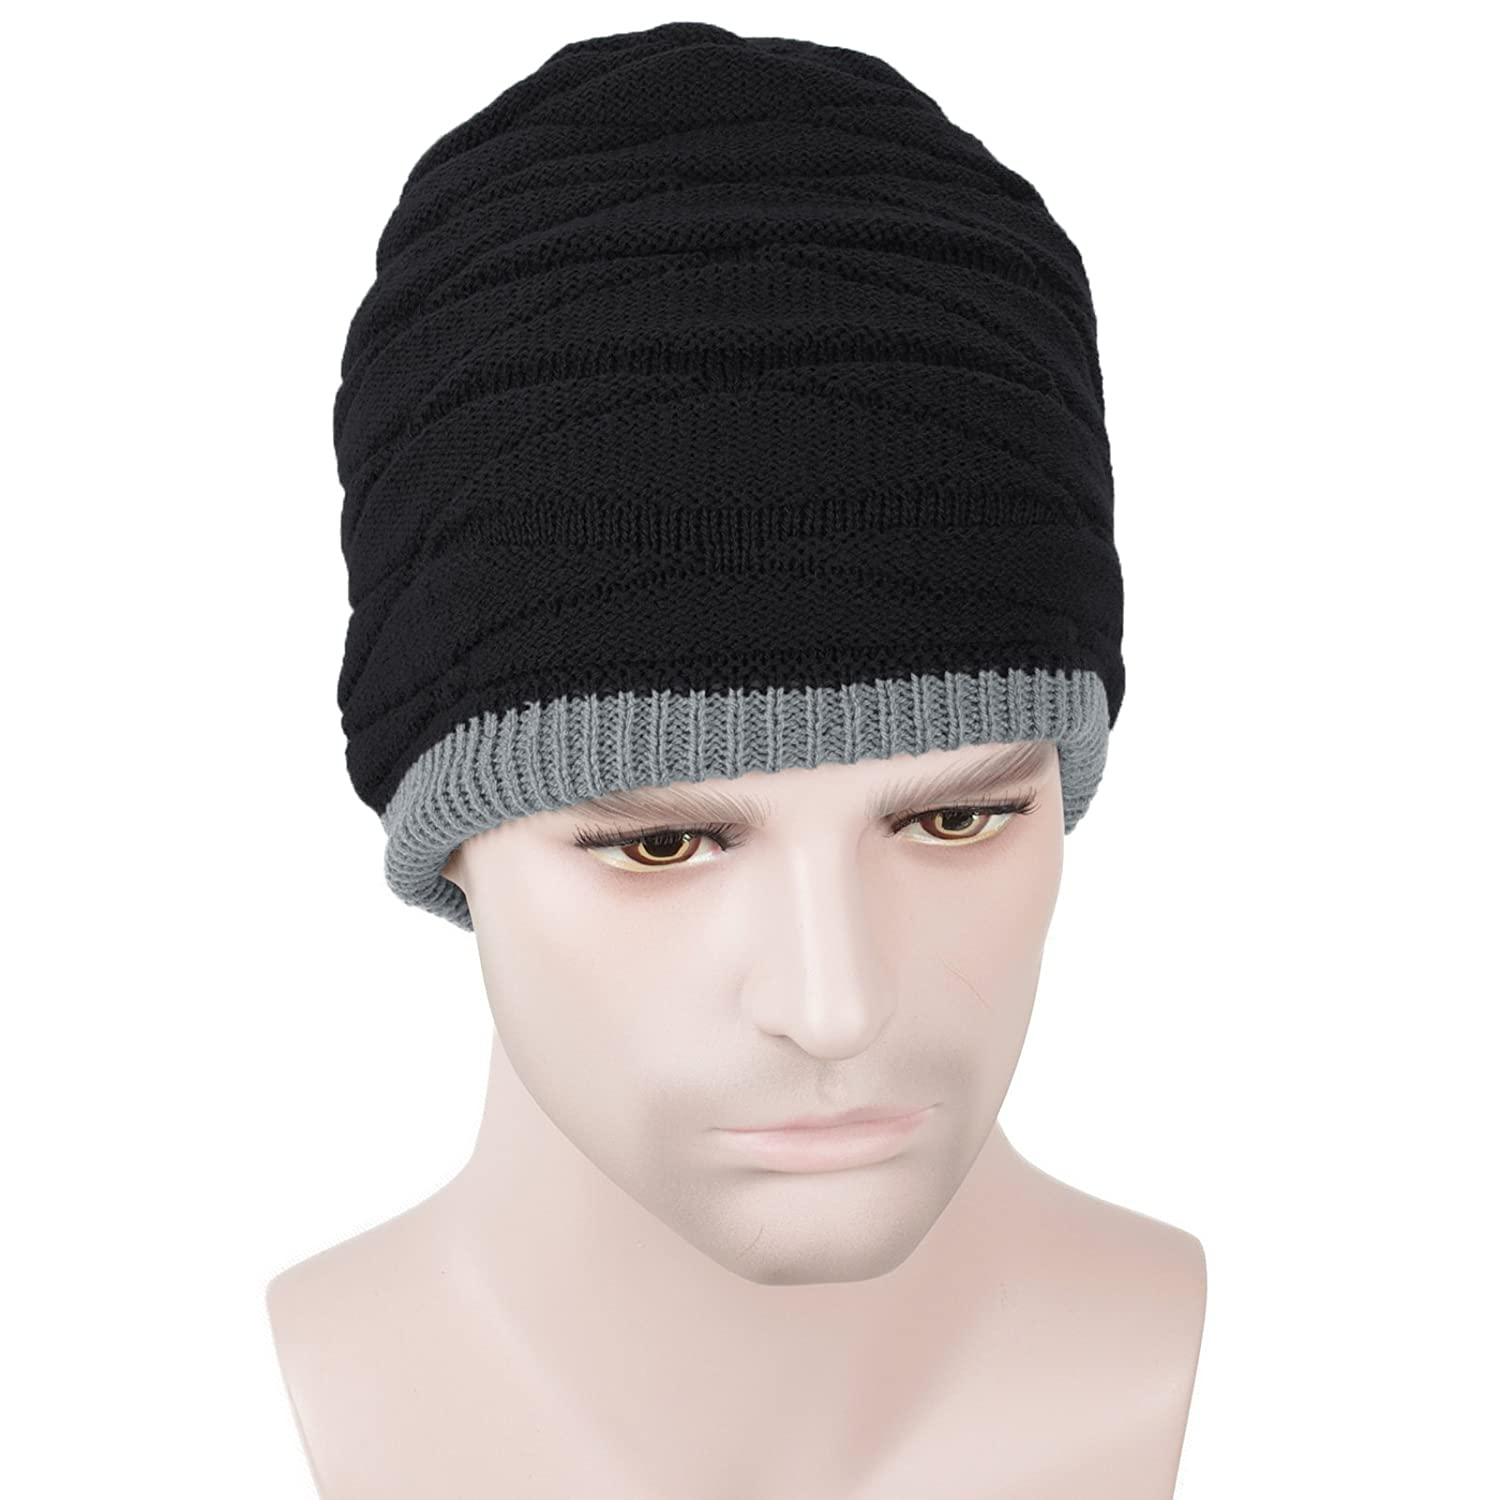 80f3e045 Men Women Daily Comfort Beanie Hat Knit Skull Cap for All Season/Sports/ Fitness/Workout (Black) at Amazon Men's Clothing store: